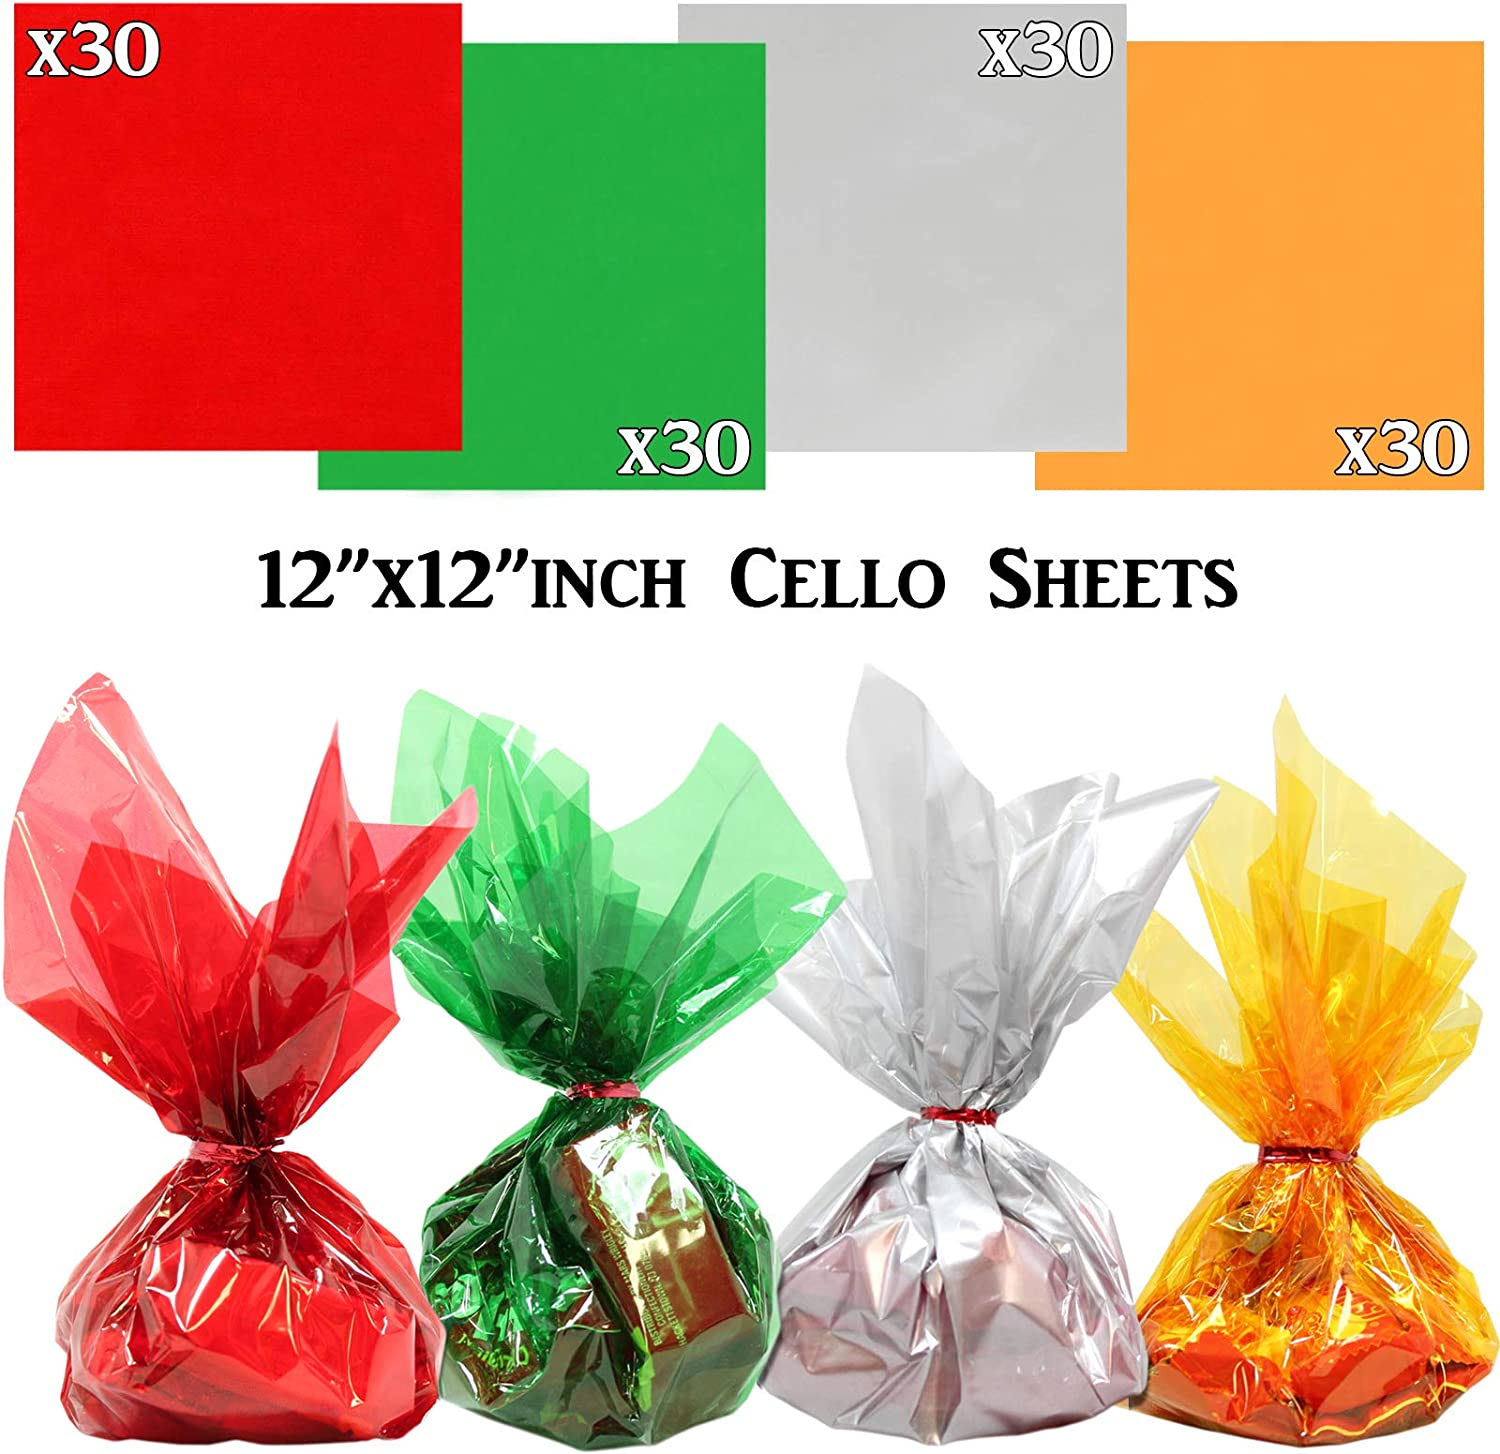 Crafts 12 x 12 inches Cellophane Sheets 120 pcs Pack | DIY Wrapping Holiday Mix Colors Translucent 2.3 Mil Quality Treats Anapoliz Gold Silver Green Red Christmas Colors Cello Sheets